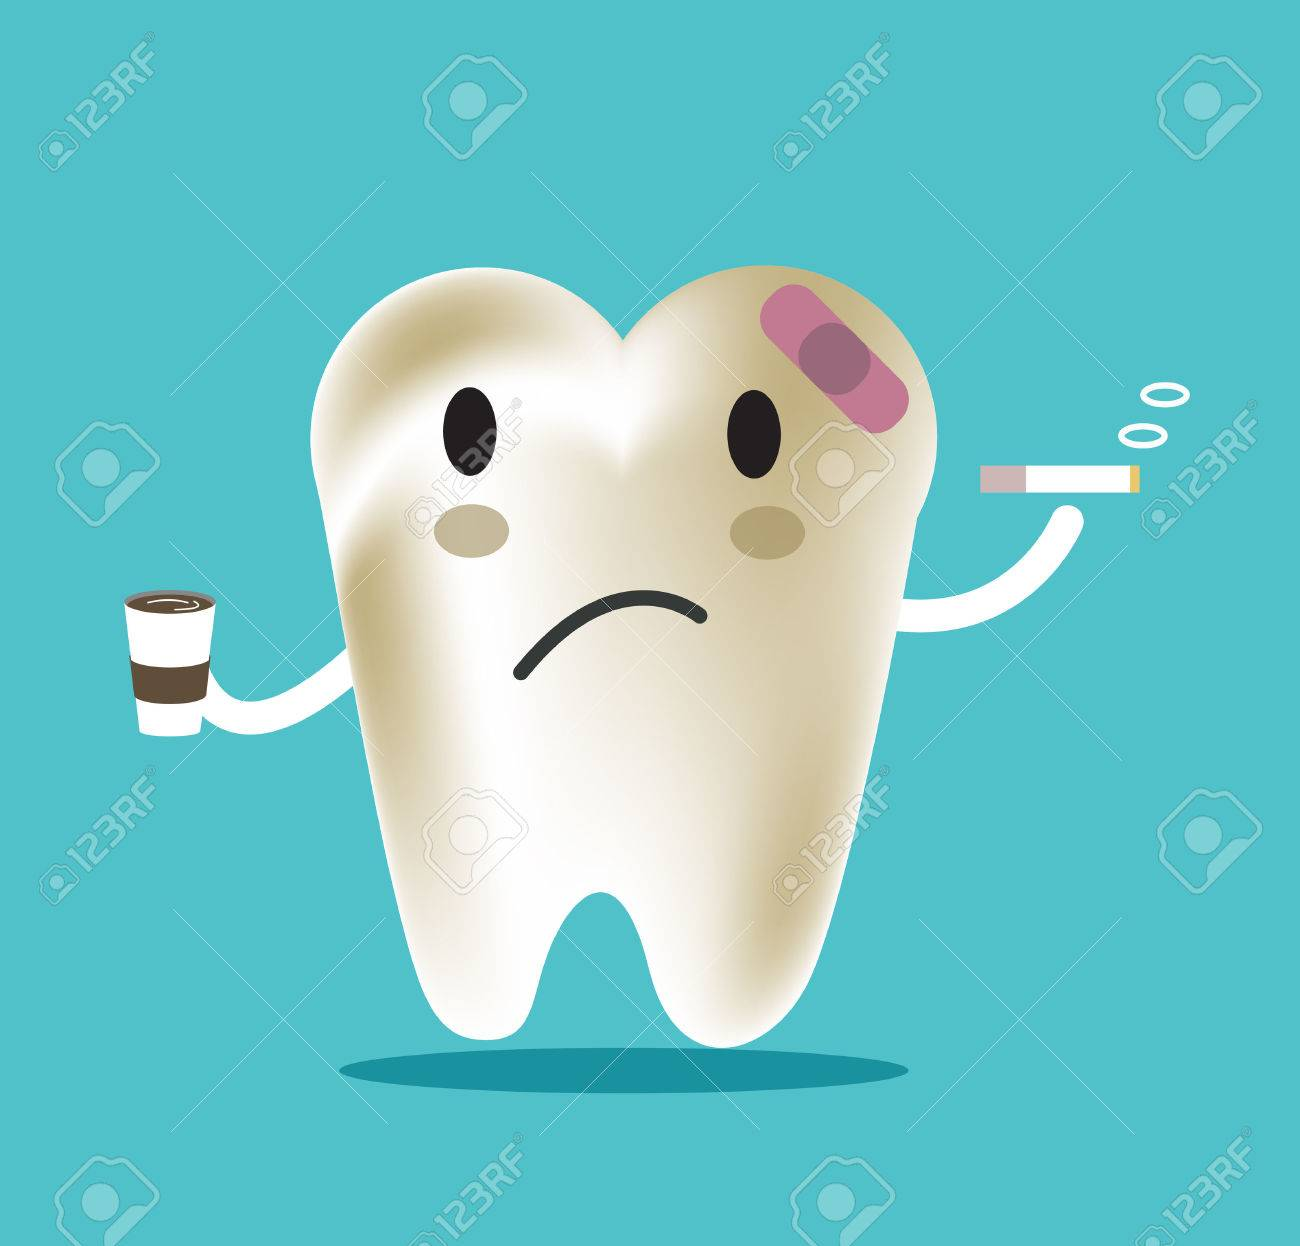 Unhealthy Tooth With Coffee And Smoke Great For Dental Care